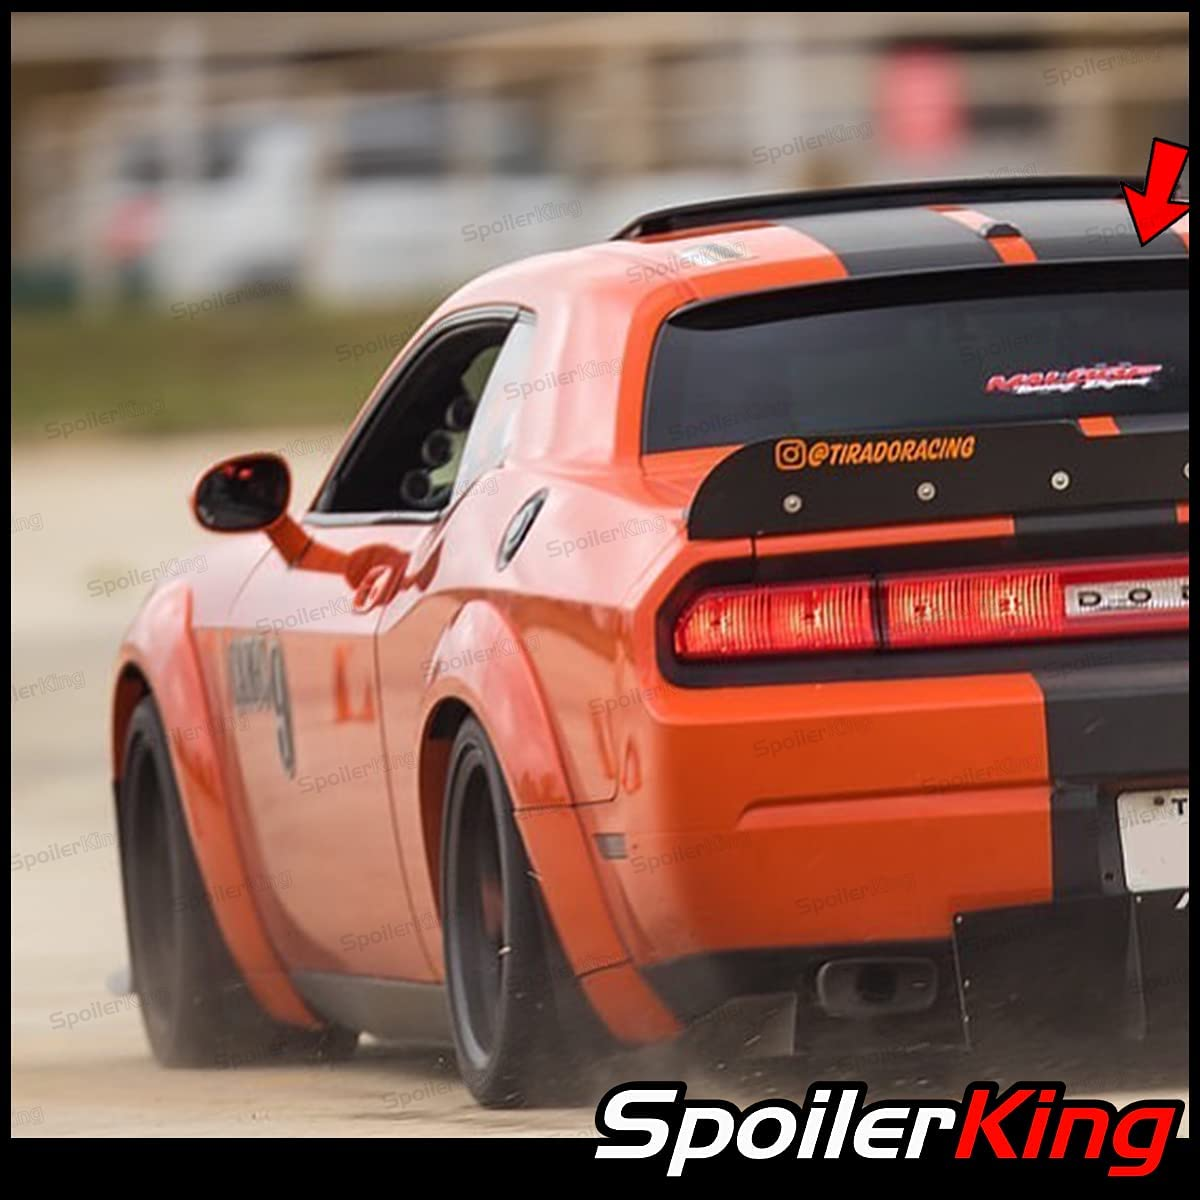 SpoilerKing Rear Super popular specialty store Window Roof Spoiler 40% OFF Cheap Sale compatible with Dodge Chall